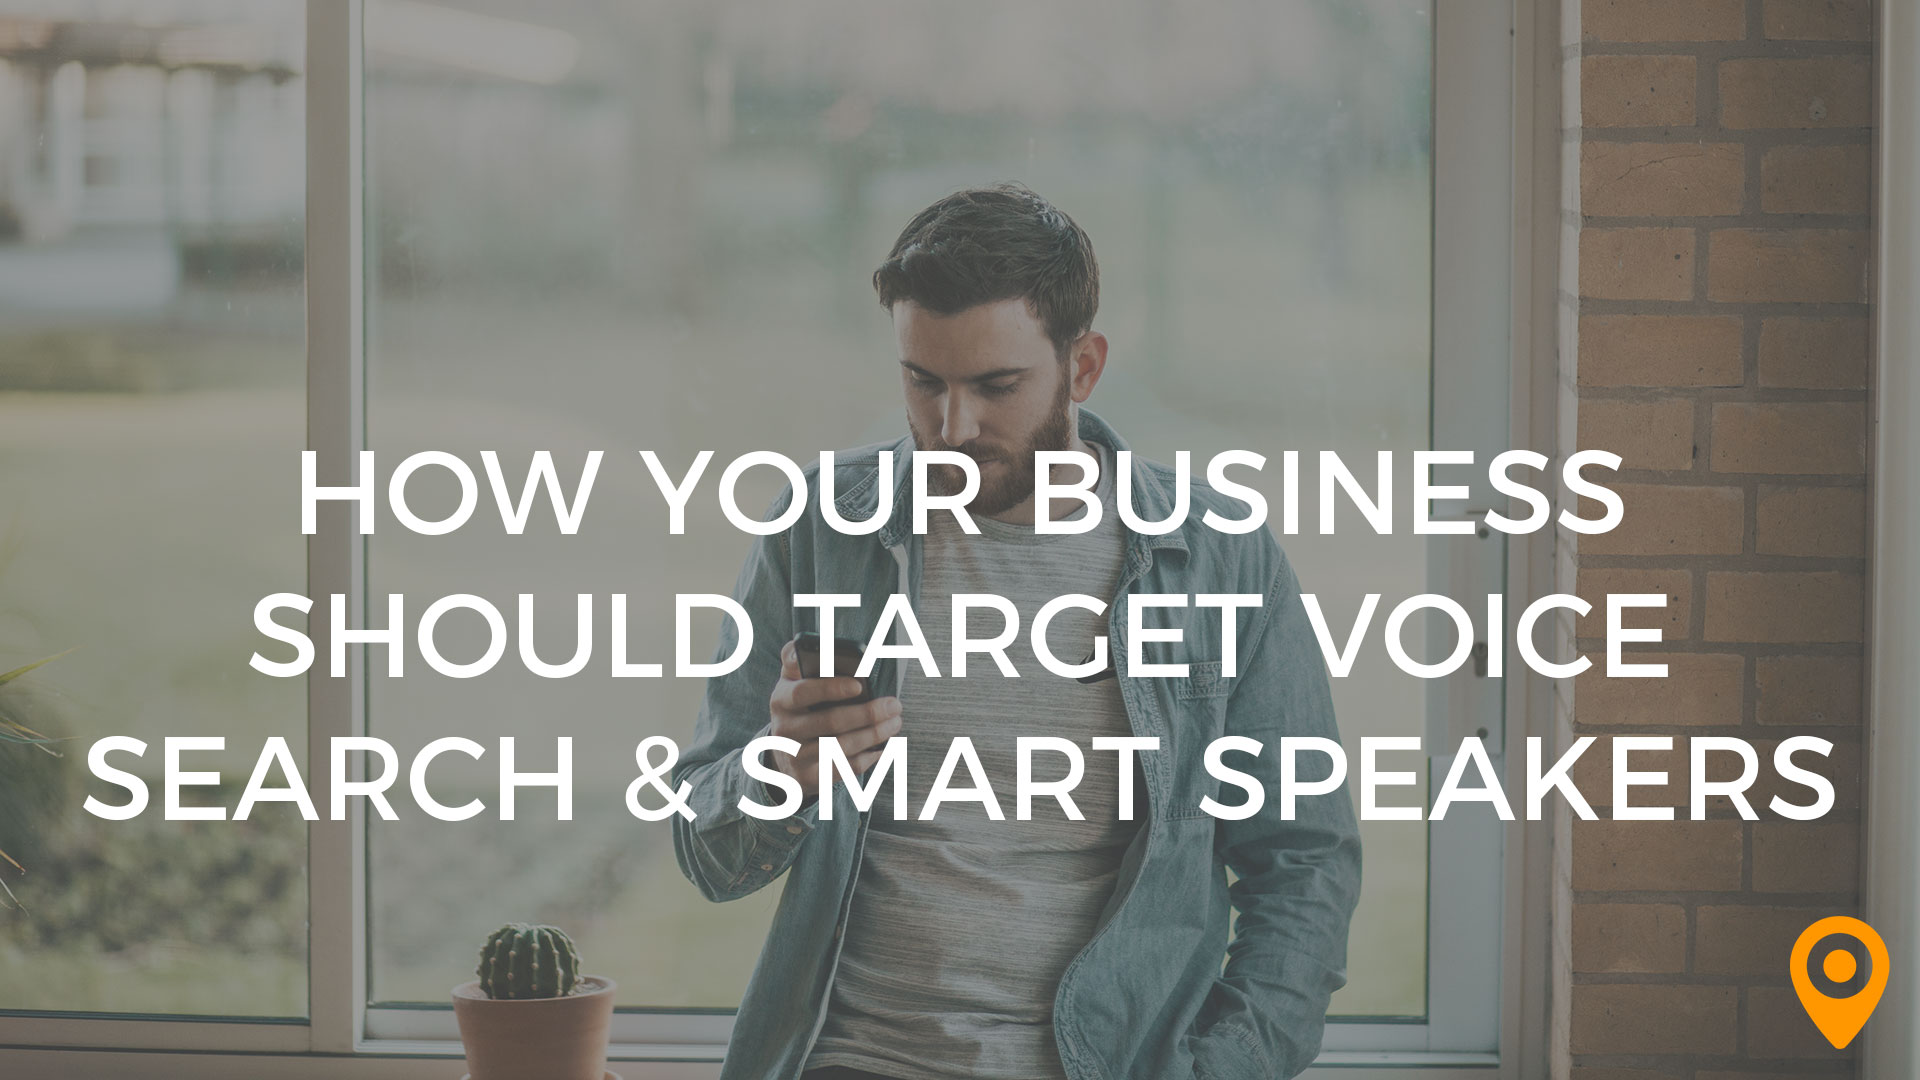 How Businesses Should Target Voice Search & Home Speakers